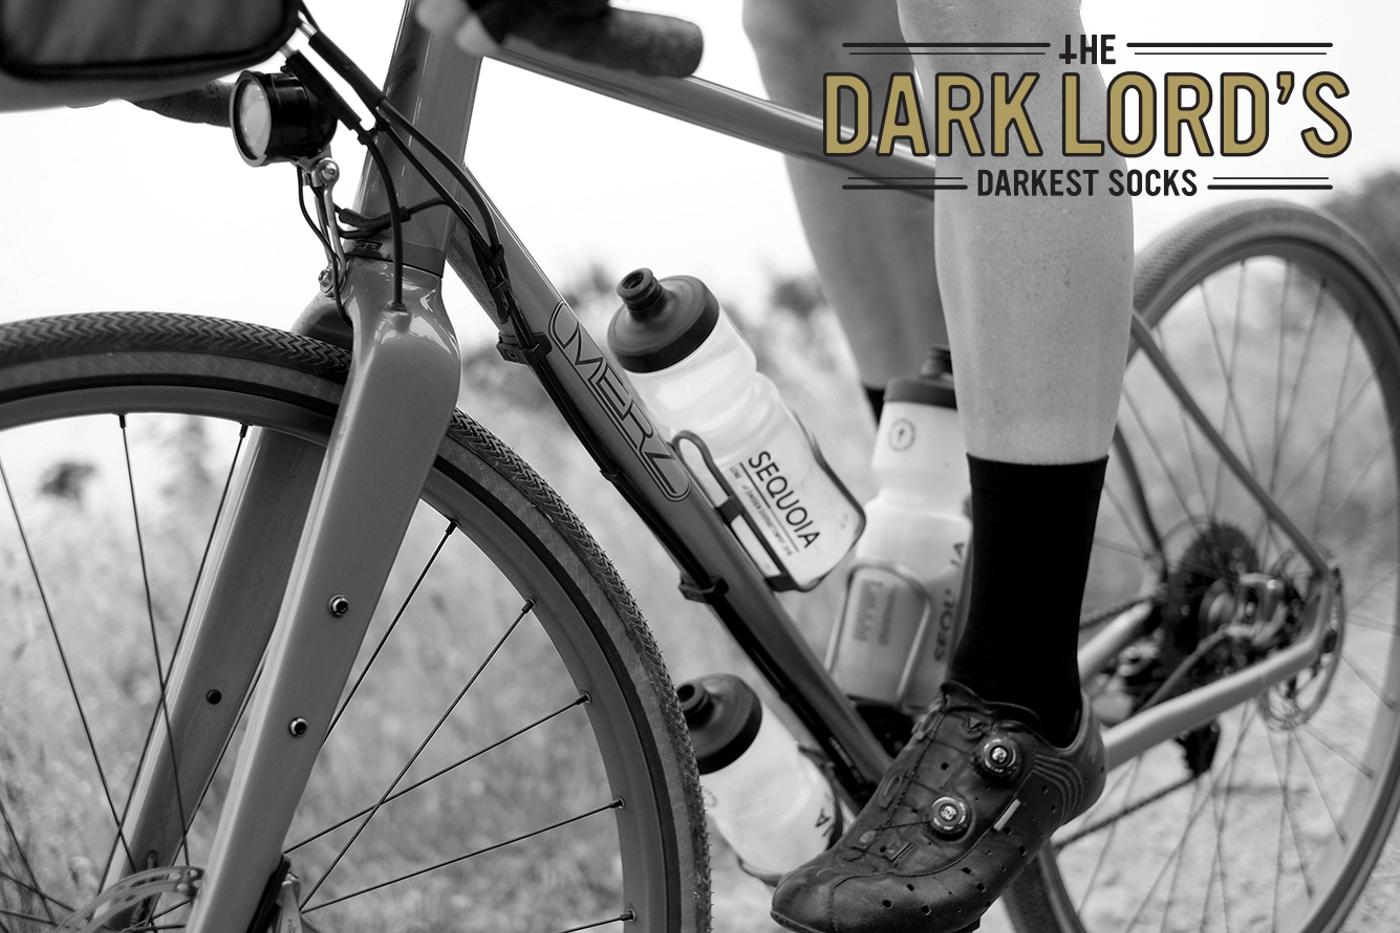 The Dark Lord's Collection at DeFeet